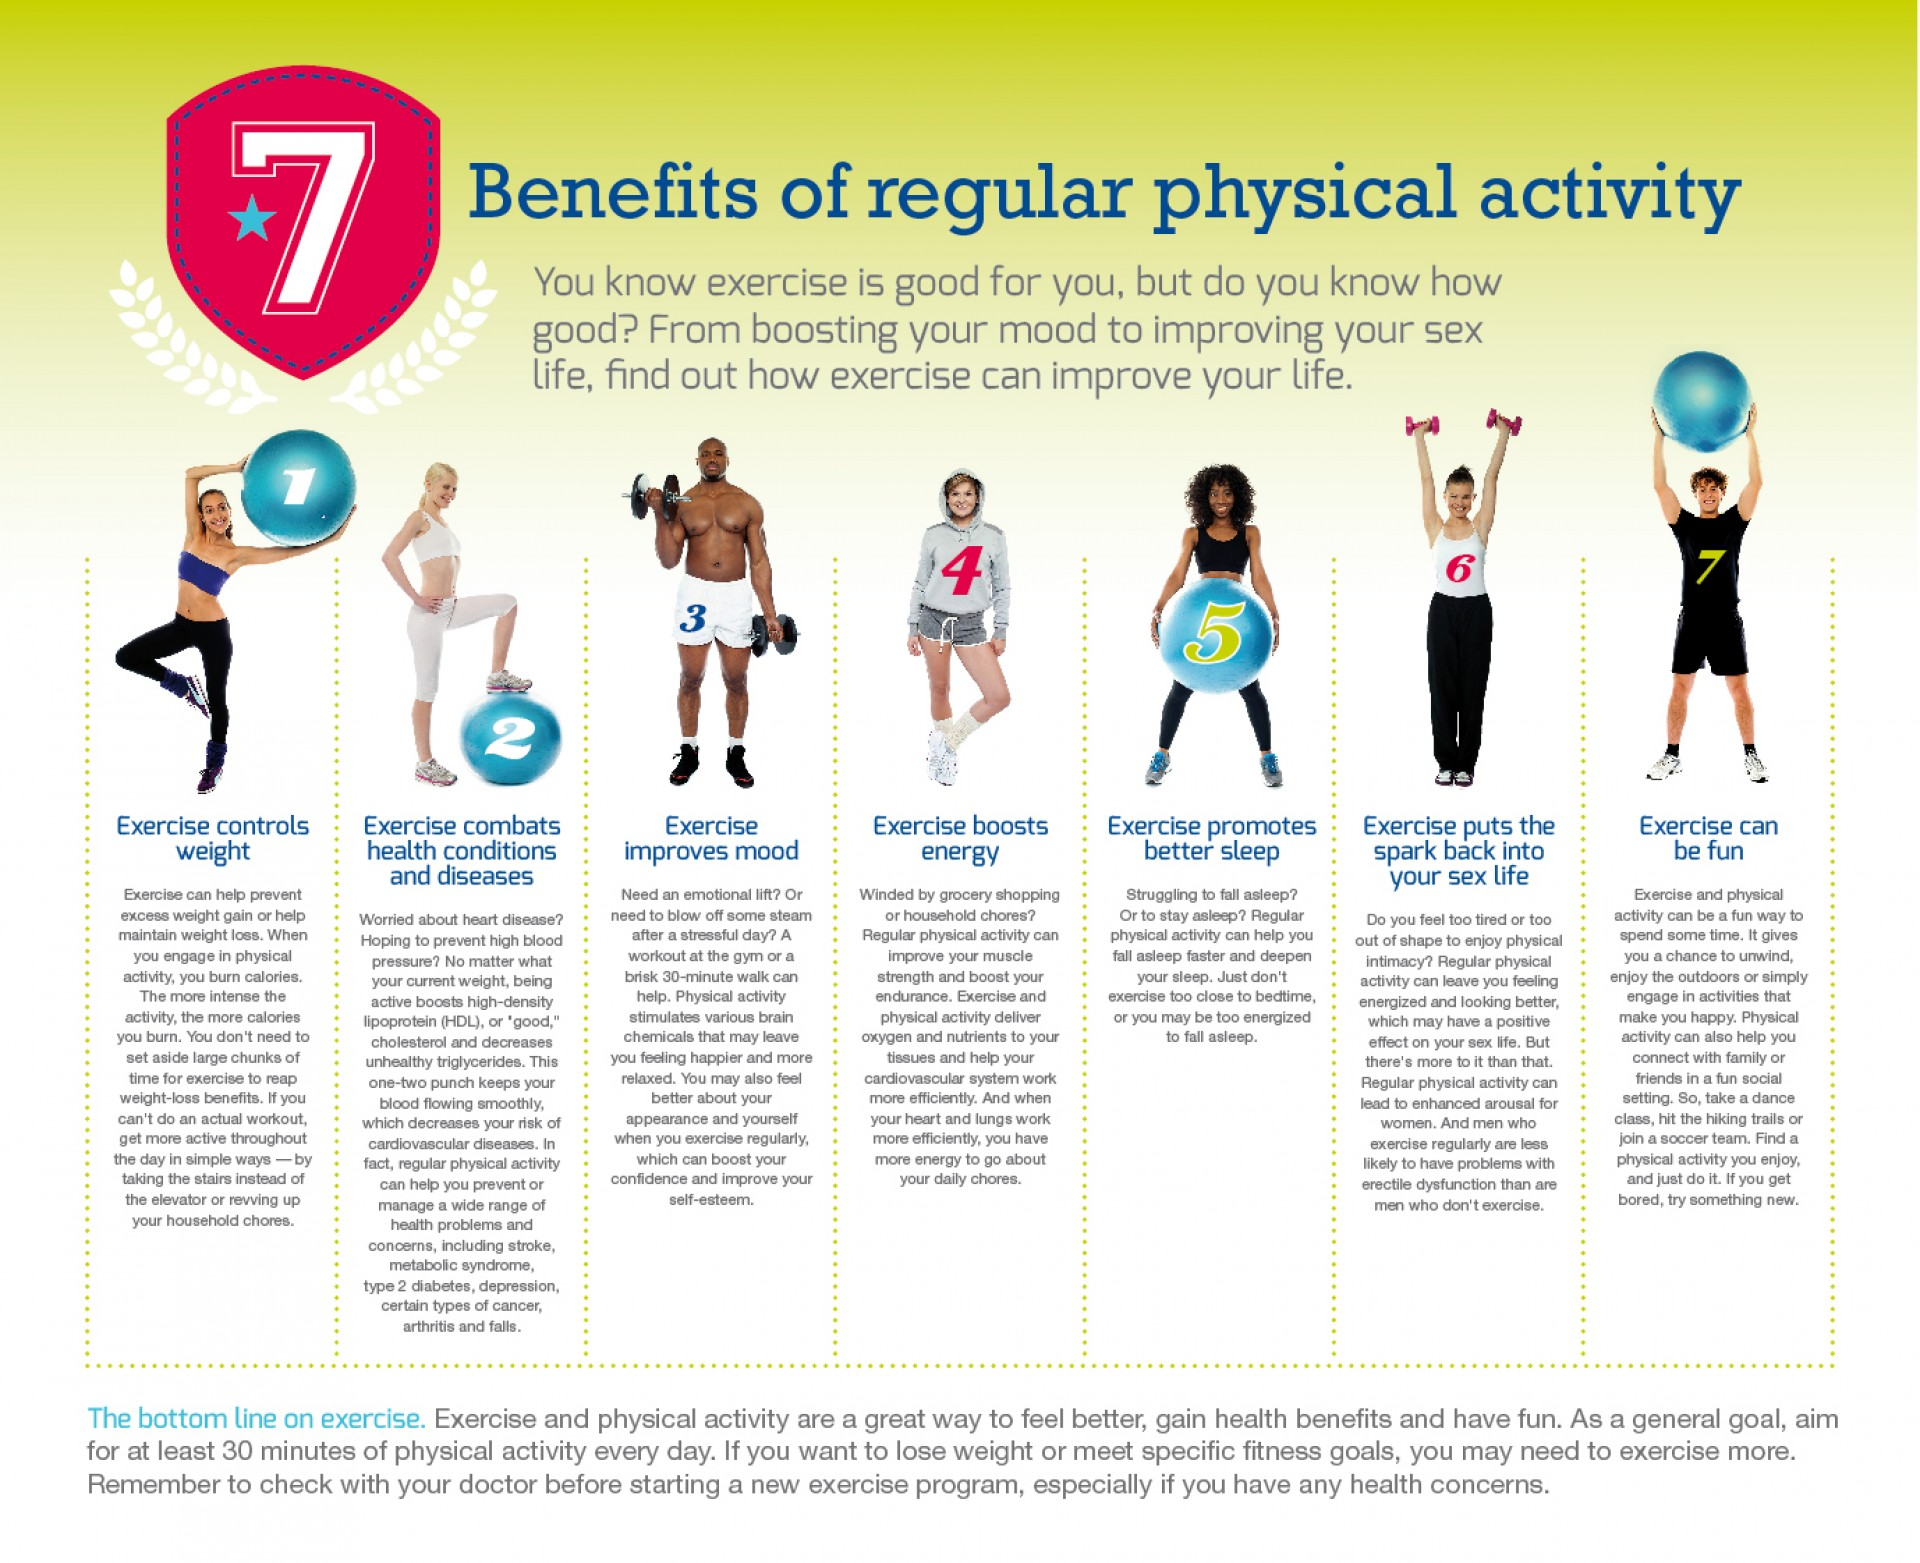 009 Fedhealth Exercise Infographic Jpg Essay Example On Sleep And Good Fascinating Health 1920